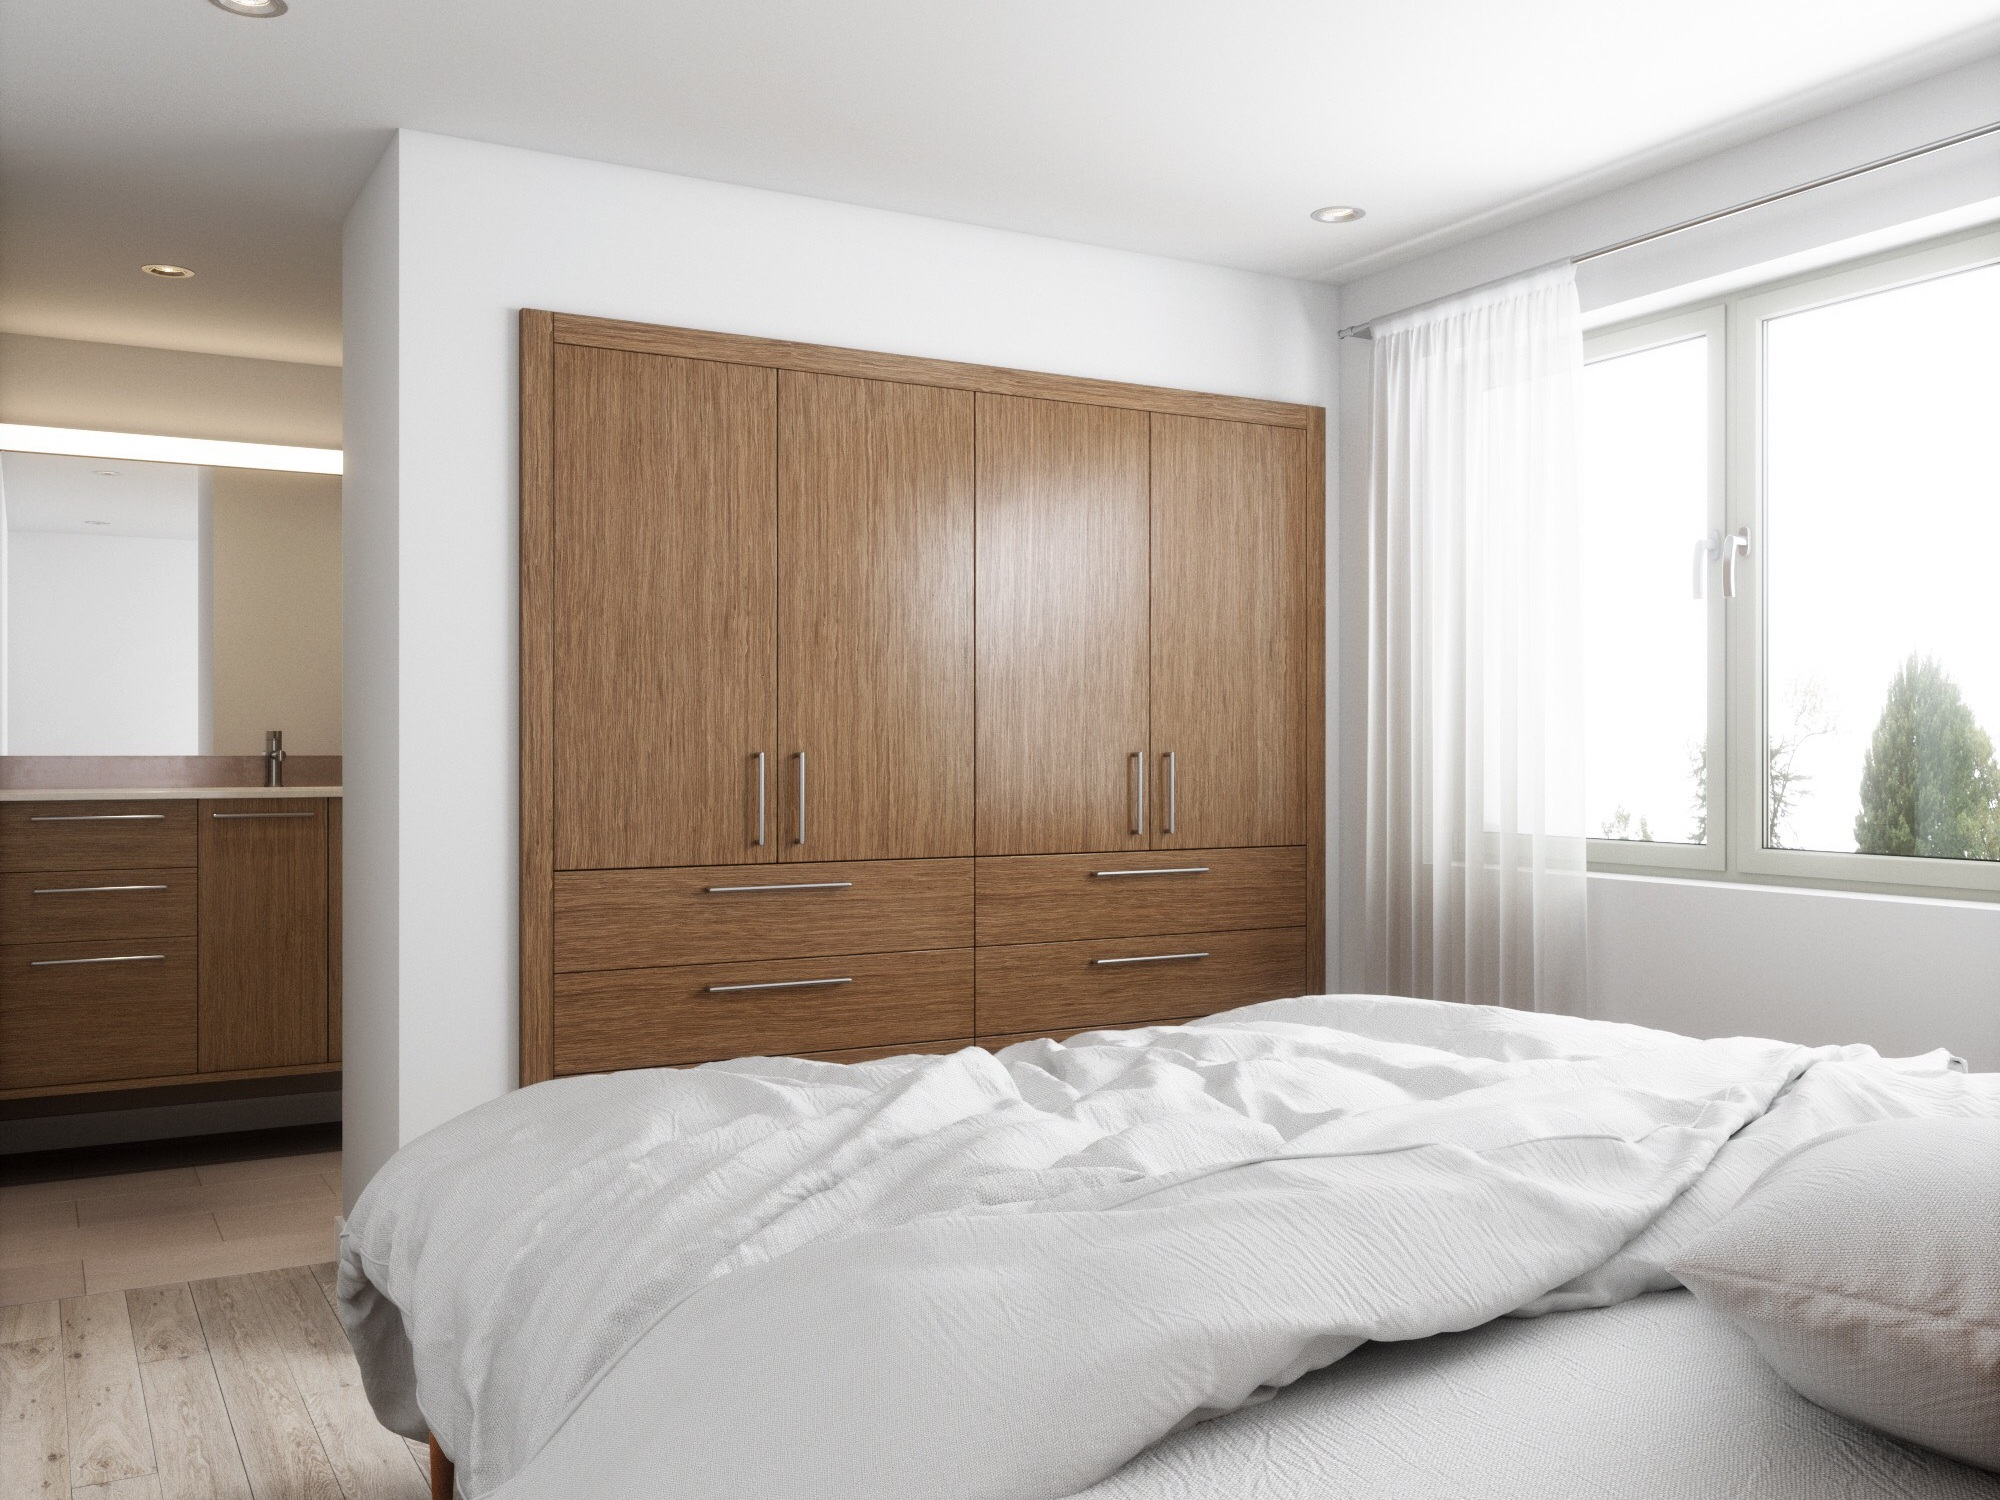 Custom Closets for Hospitality & ADU's - Maximize space and efficiency in hotel rooms and accessory dwelling units with the Hone Closet System, giving travelers and guests a stress-free space to settle in.